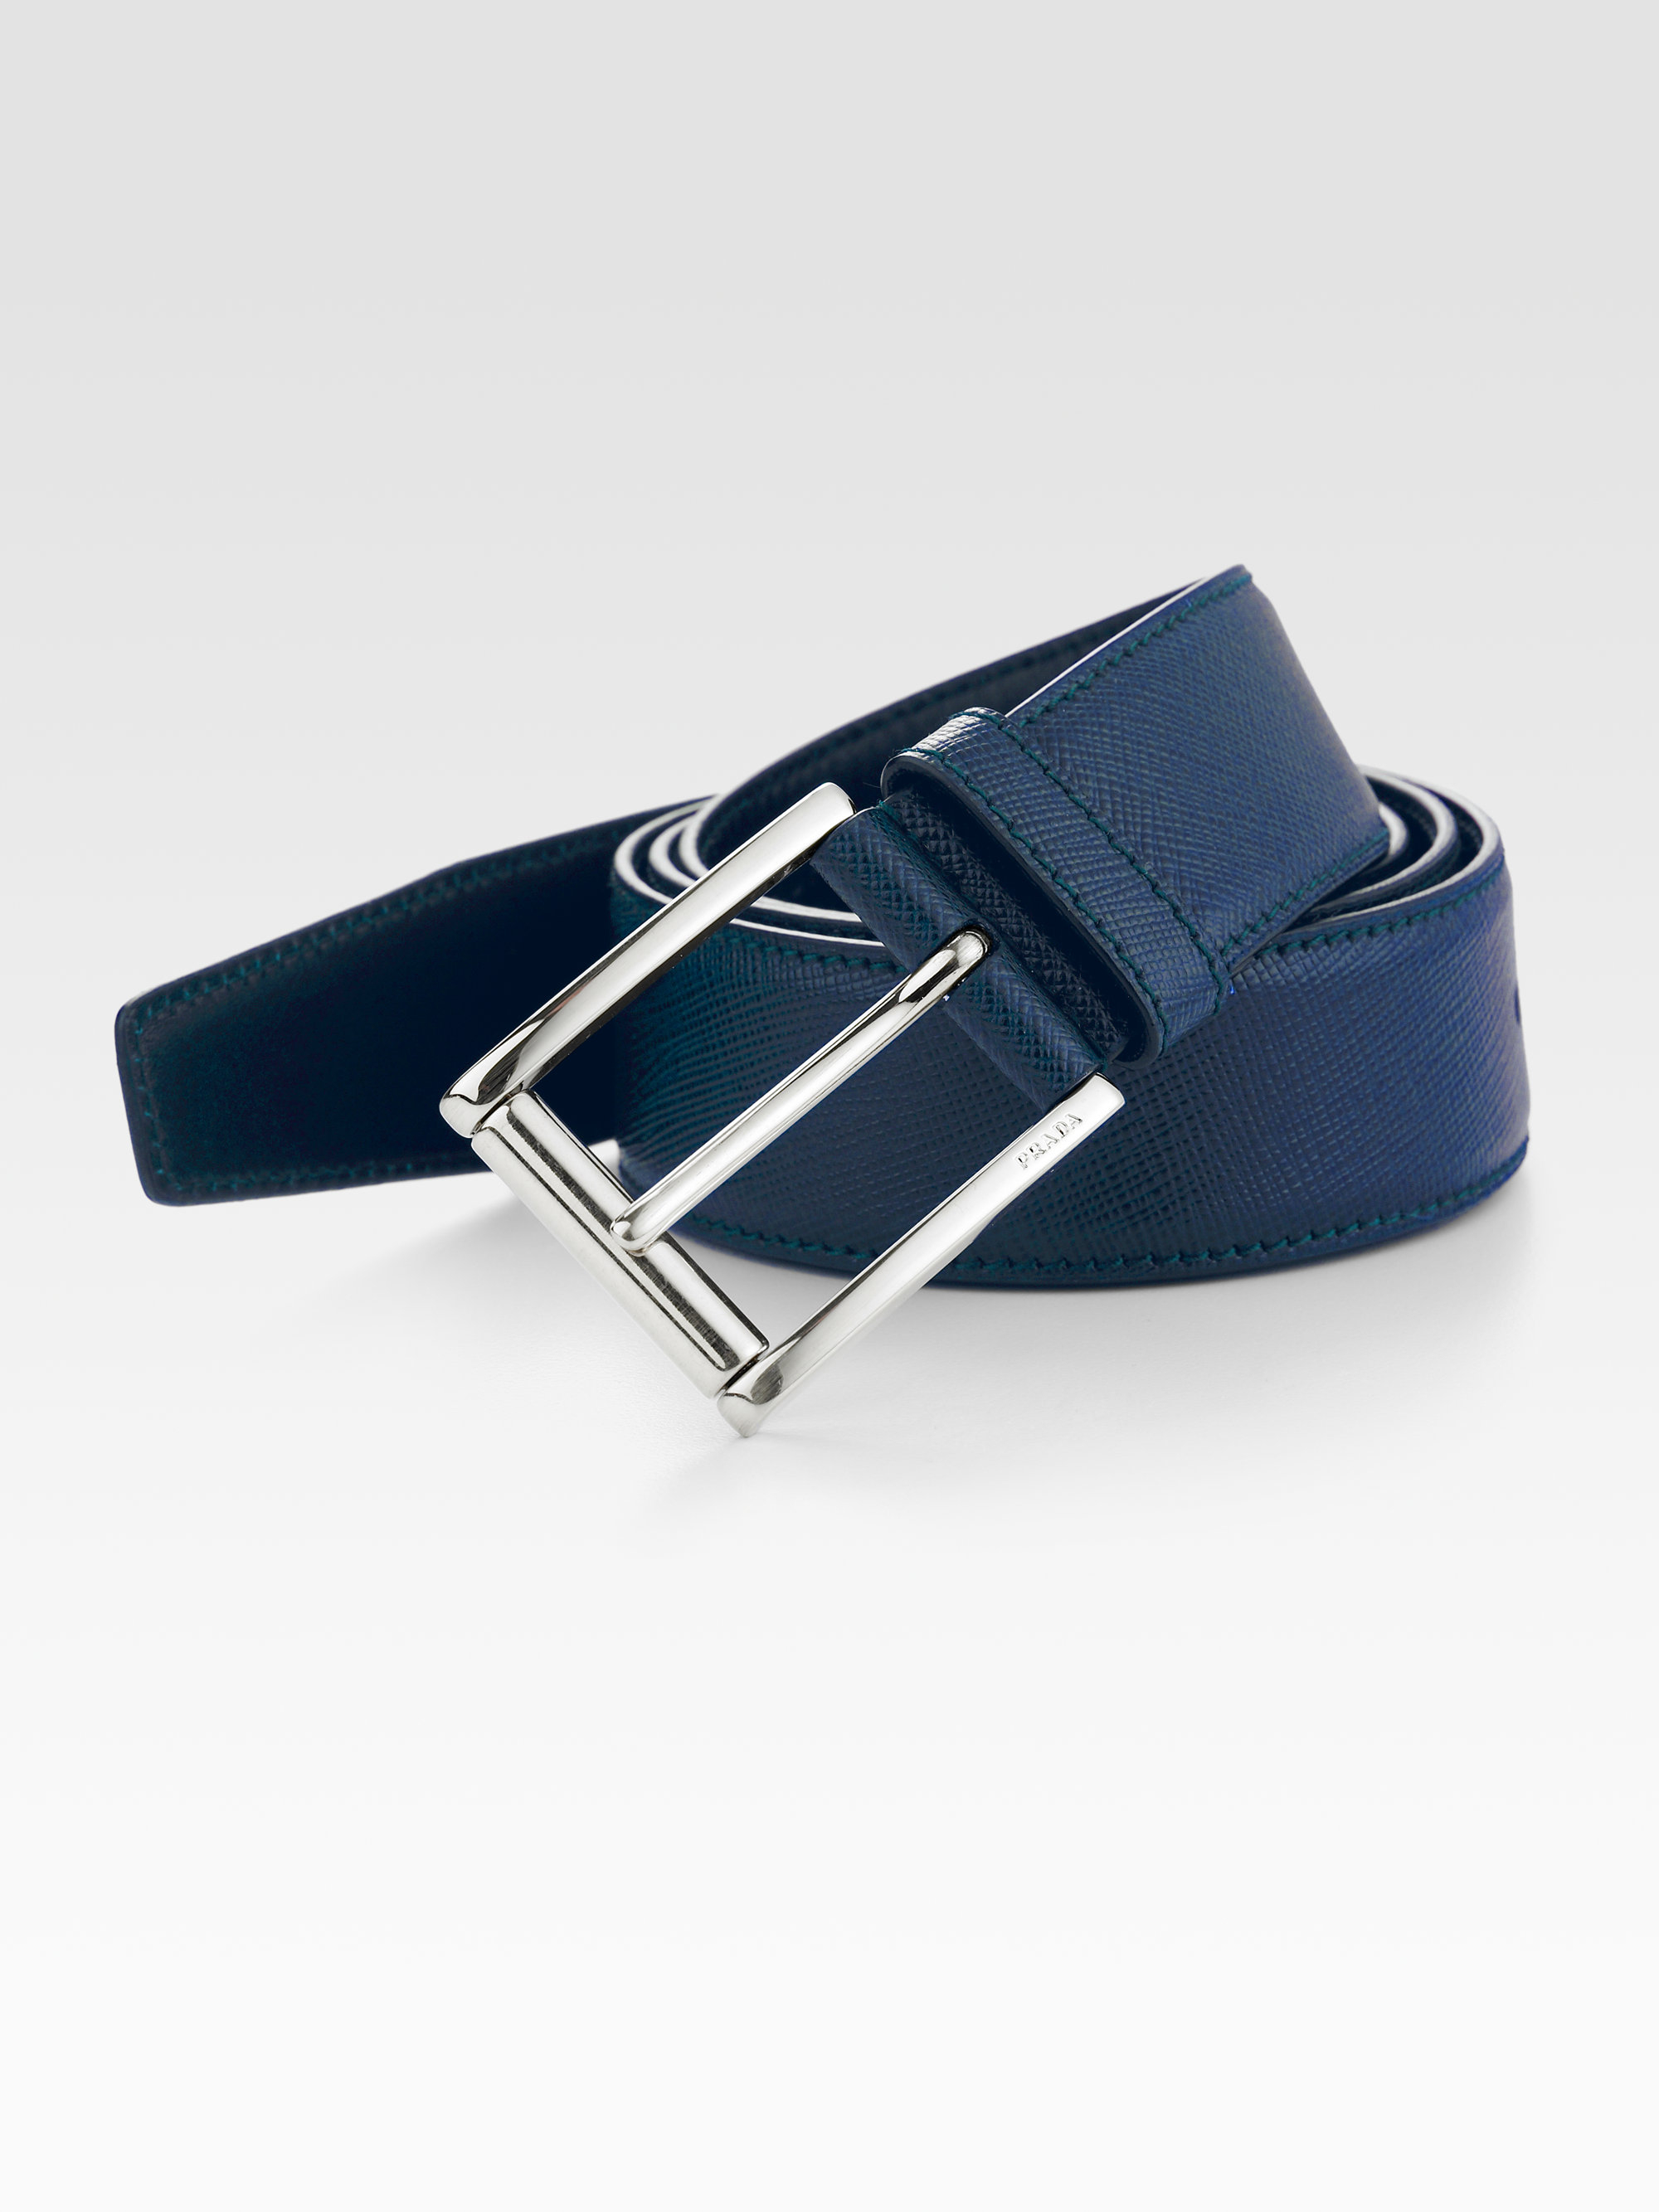 932d99d680e21 Prada Etched Saffiano Leather Belt in Blue for Men - Lyst